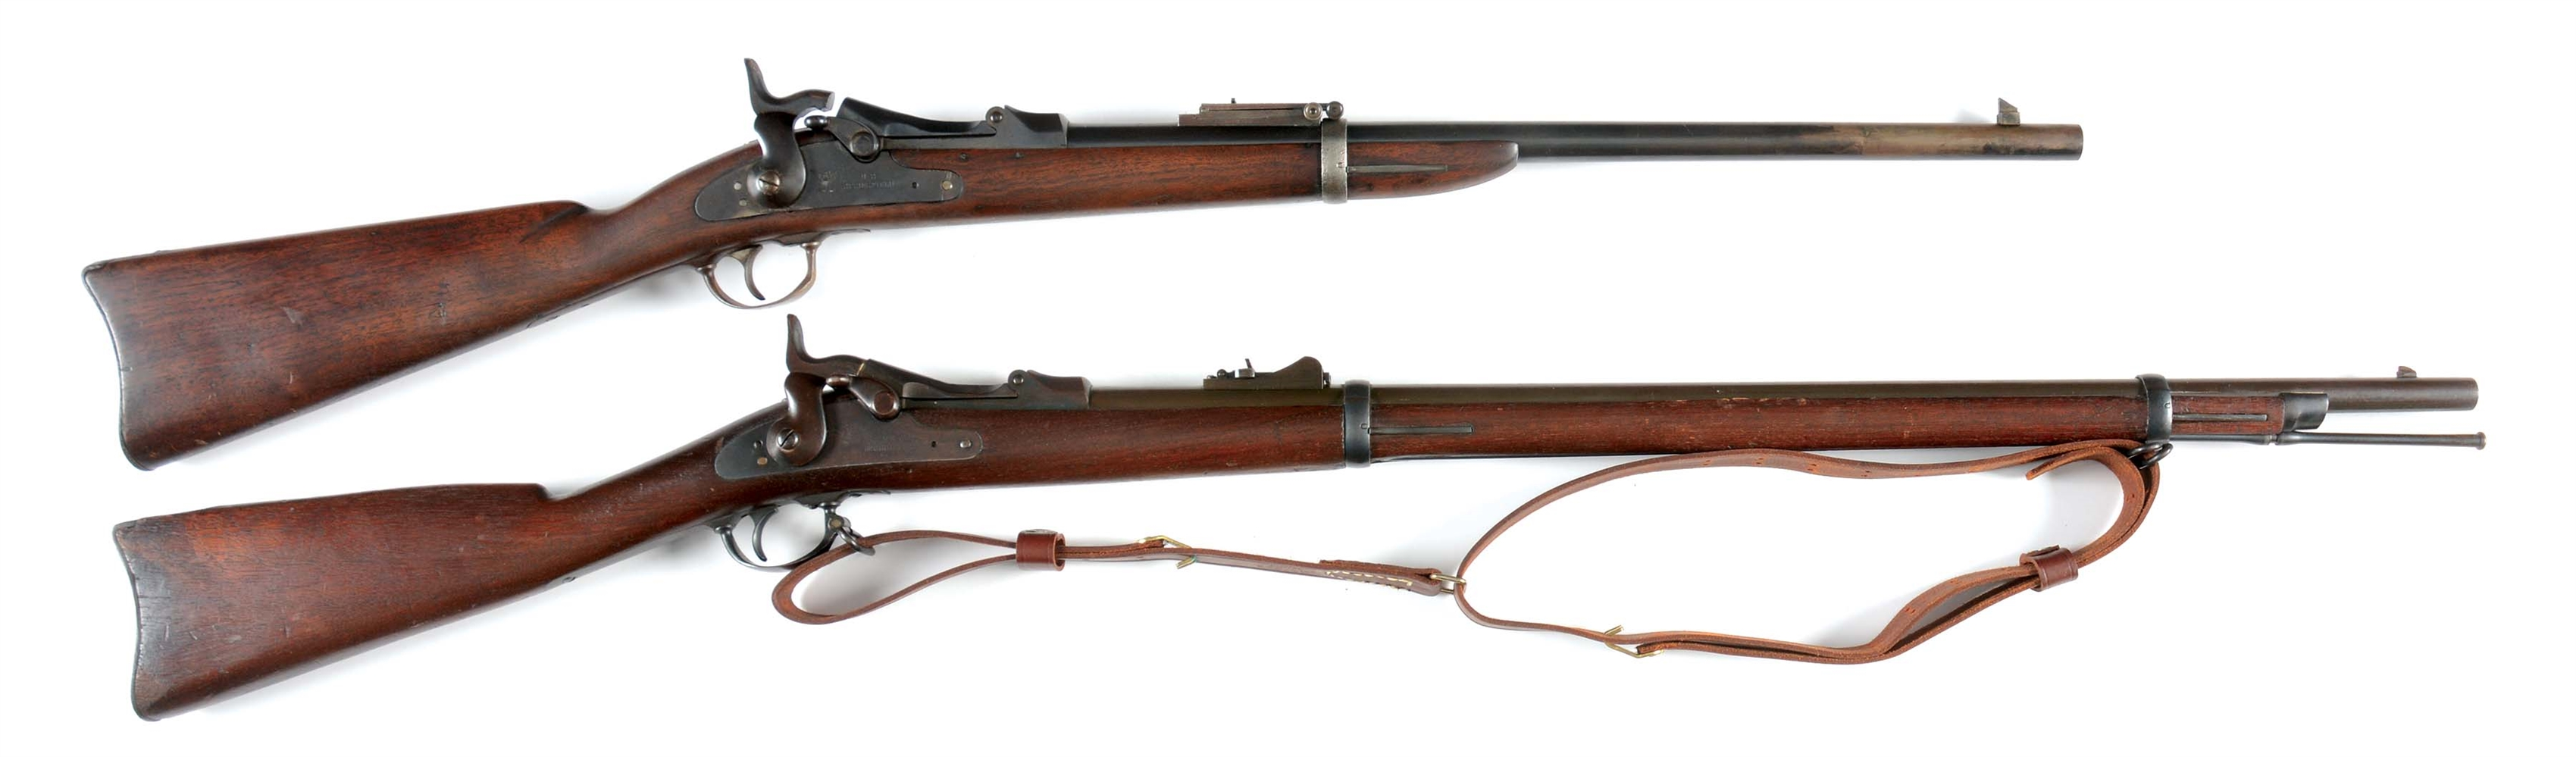 (A) LOT OF TWO: SPRINGFIELD TRAPDOOR .45-70 RIFLE AND CARBINE.